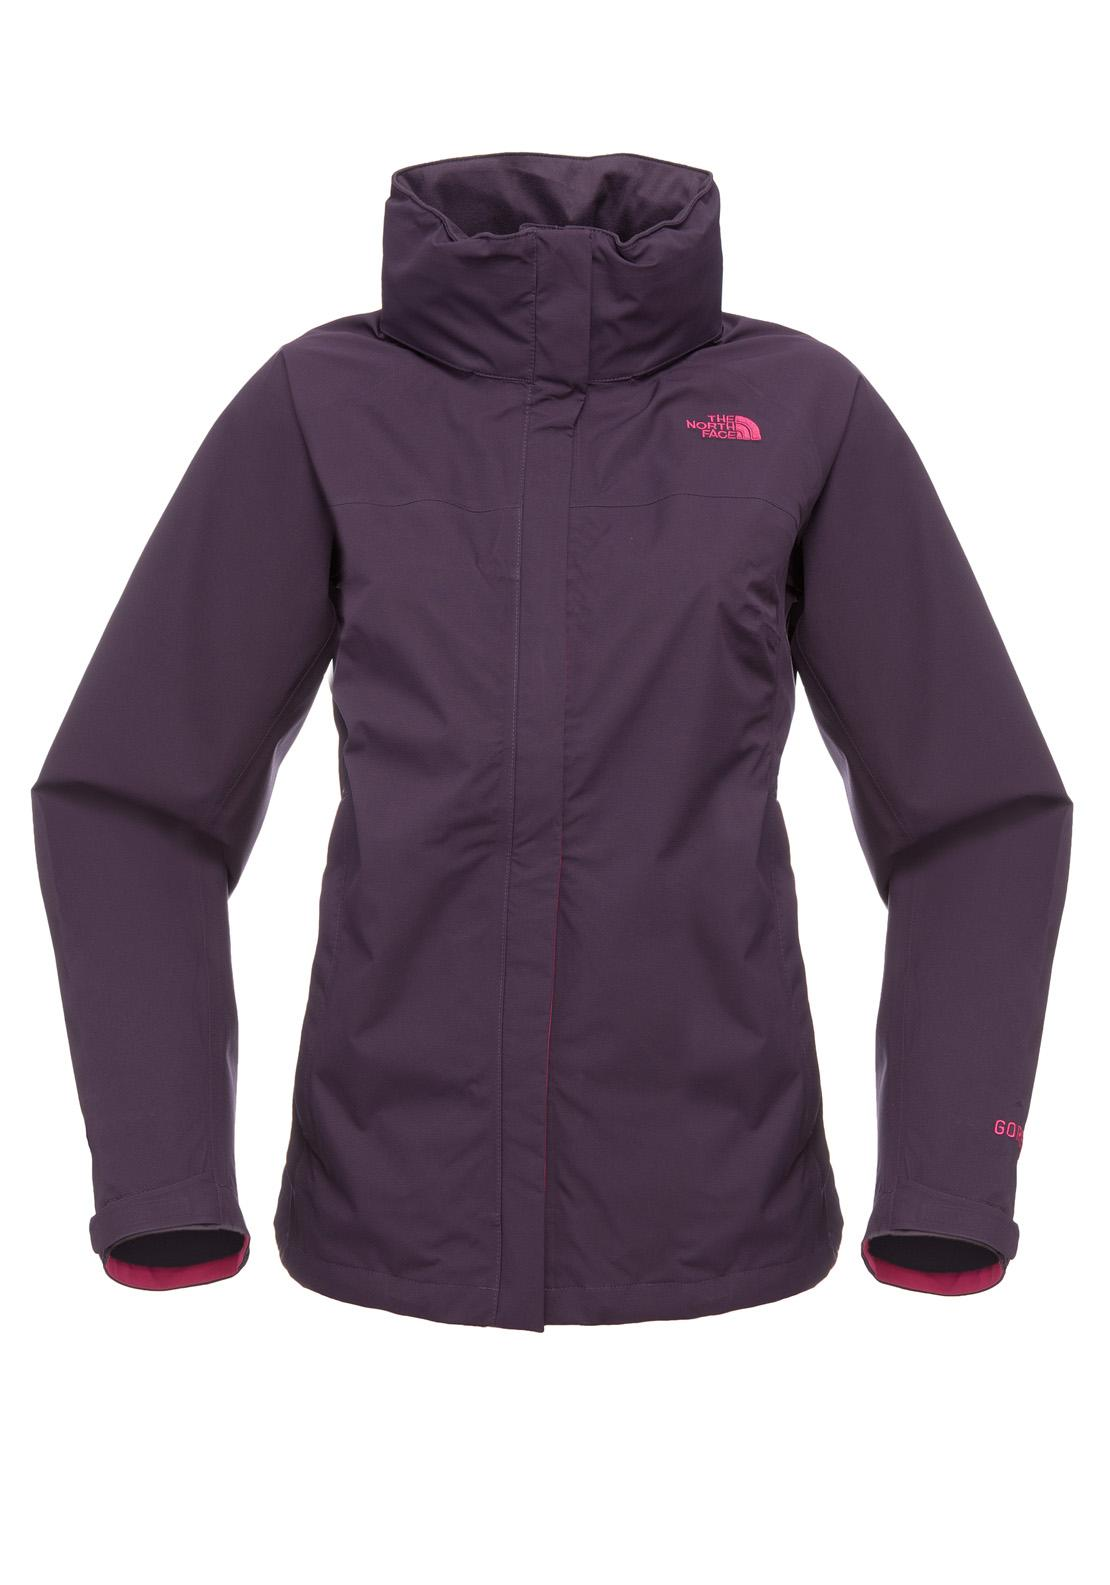 The North Face Women's Circadian Jacket, Grand Purple